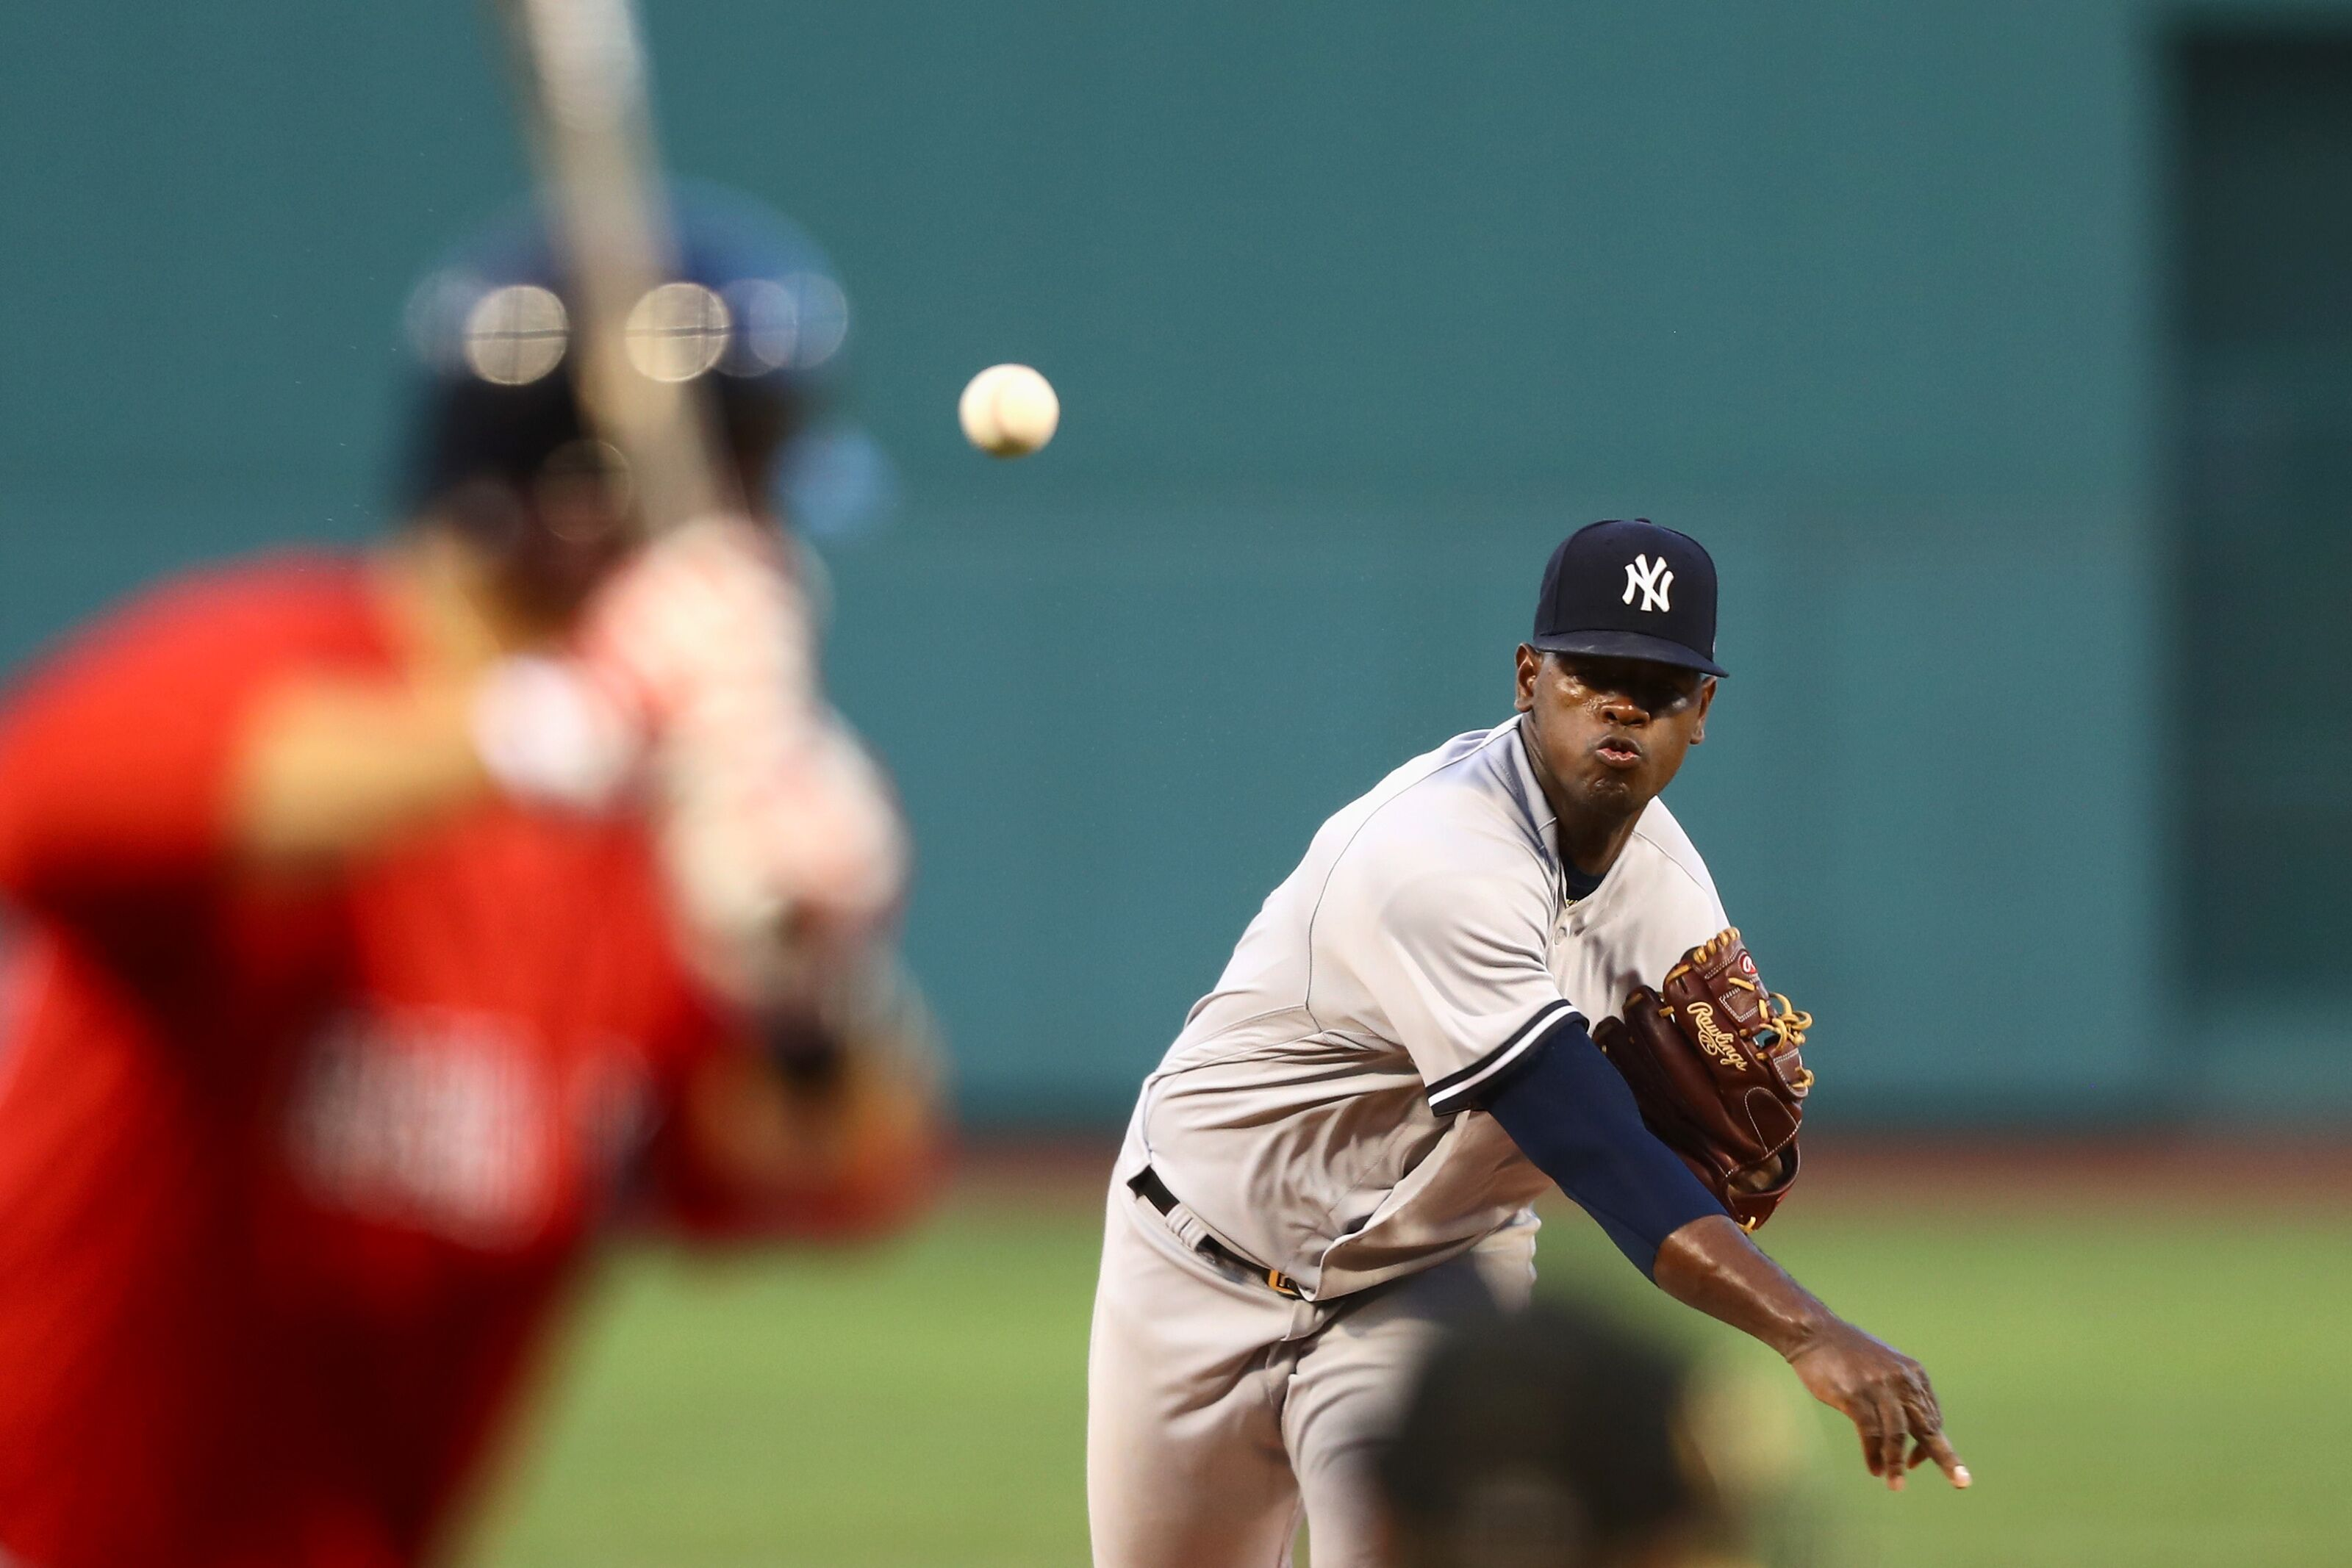 Yankees: Rough stretch of play turns into fatalism at Fenway